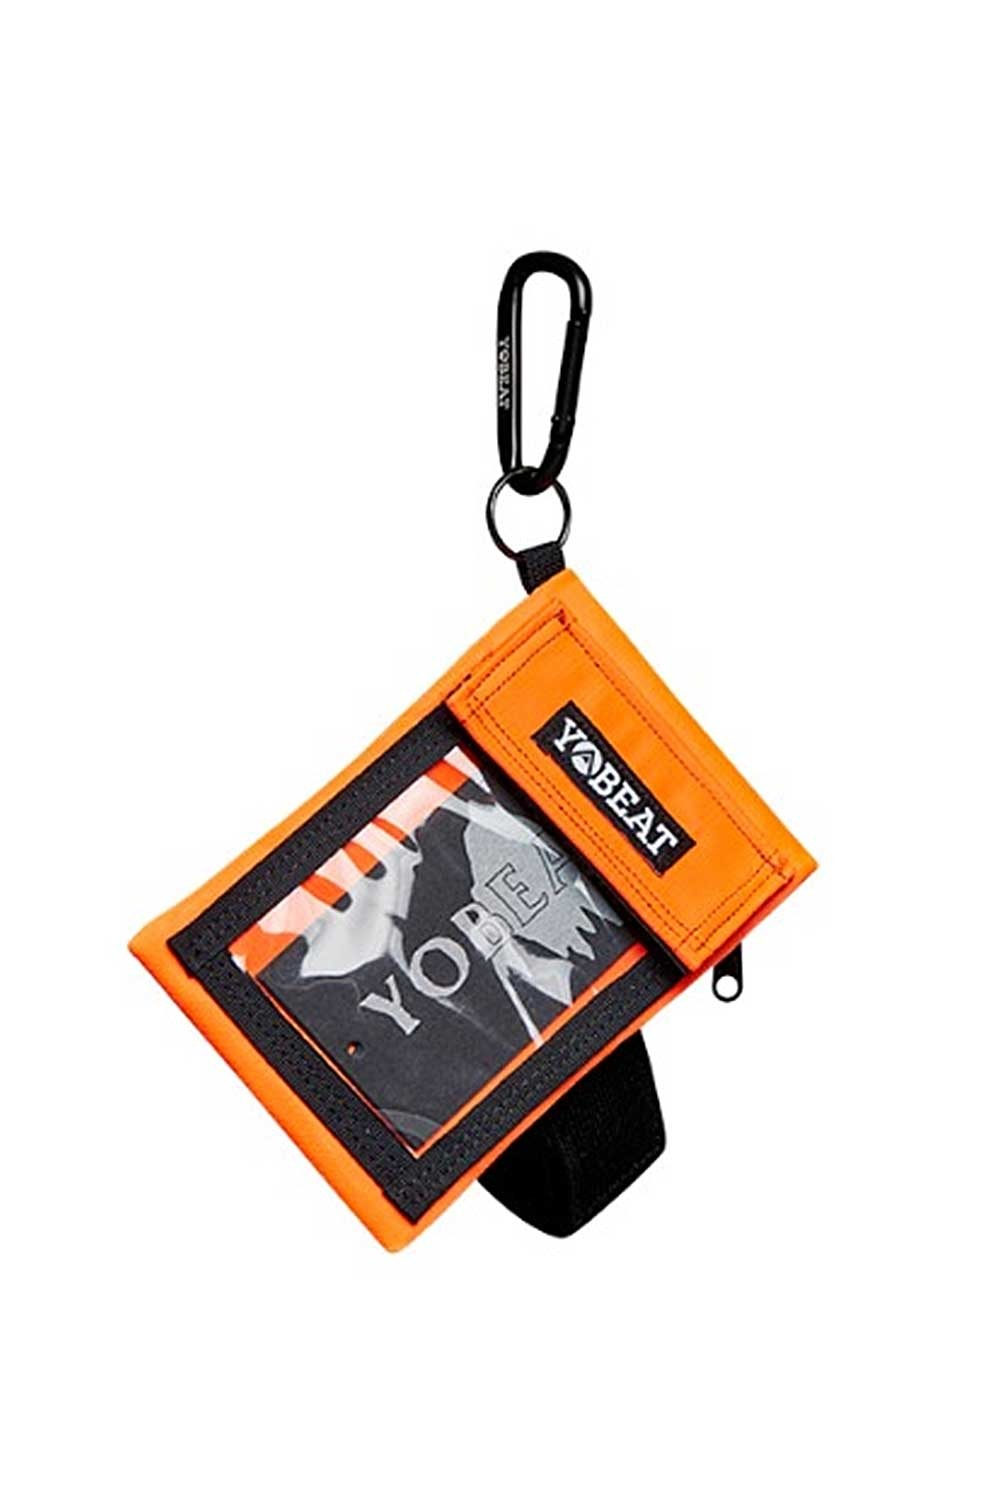 요비트 시즌권 케이스GYB803OR/NEON ORANGE YOBEAT SEASON PASS CASE DGYB803OR